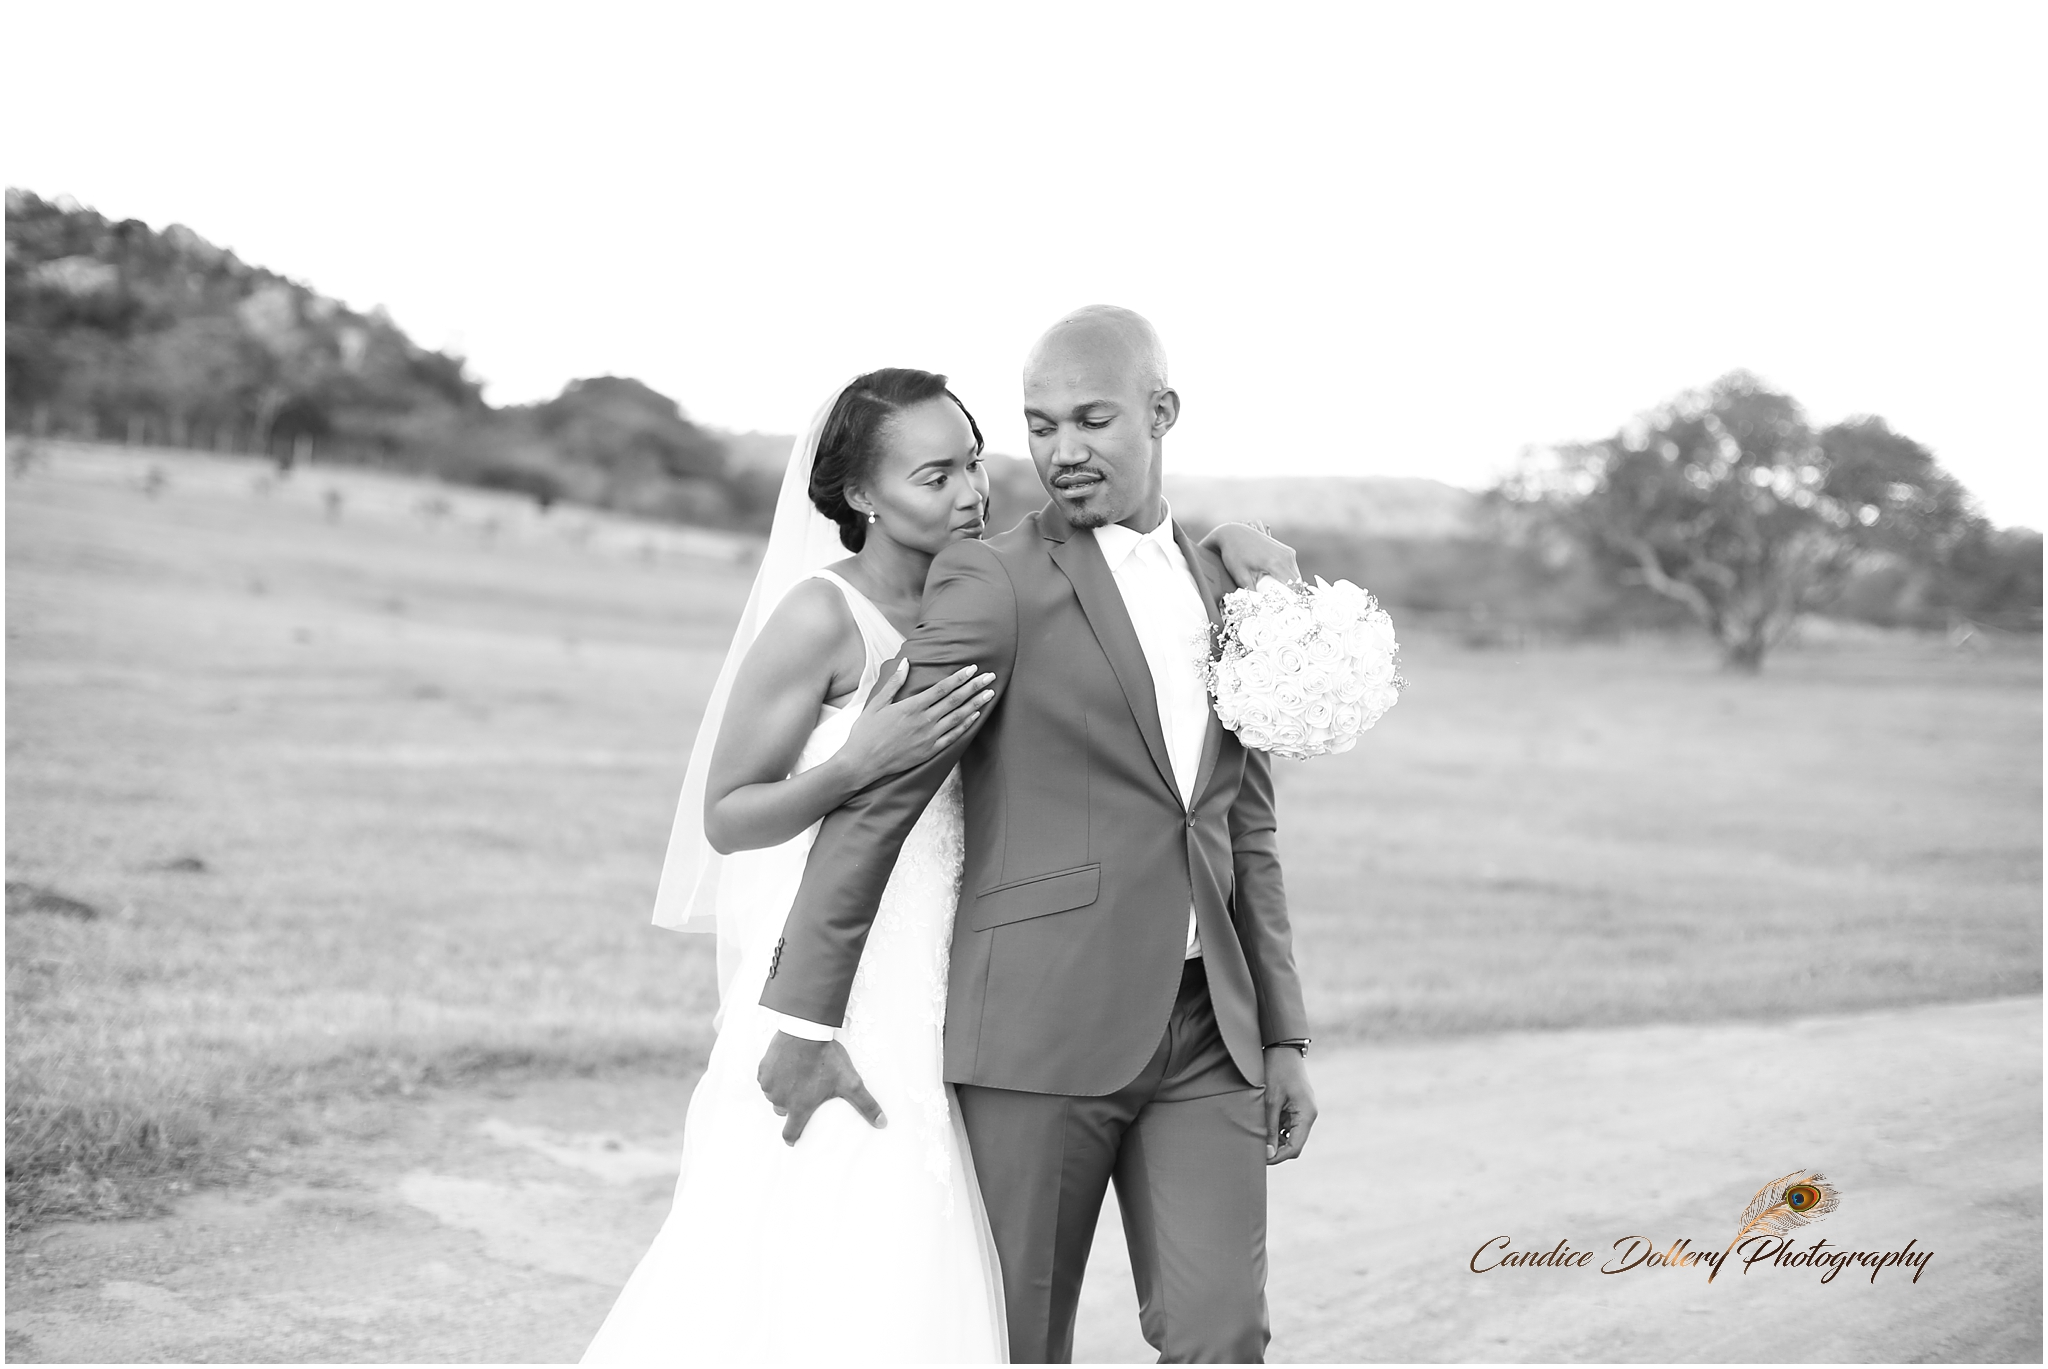 lelethu-kgotsos-wedding-candice-dollery-photography_1700